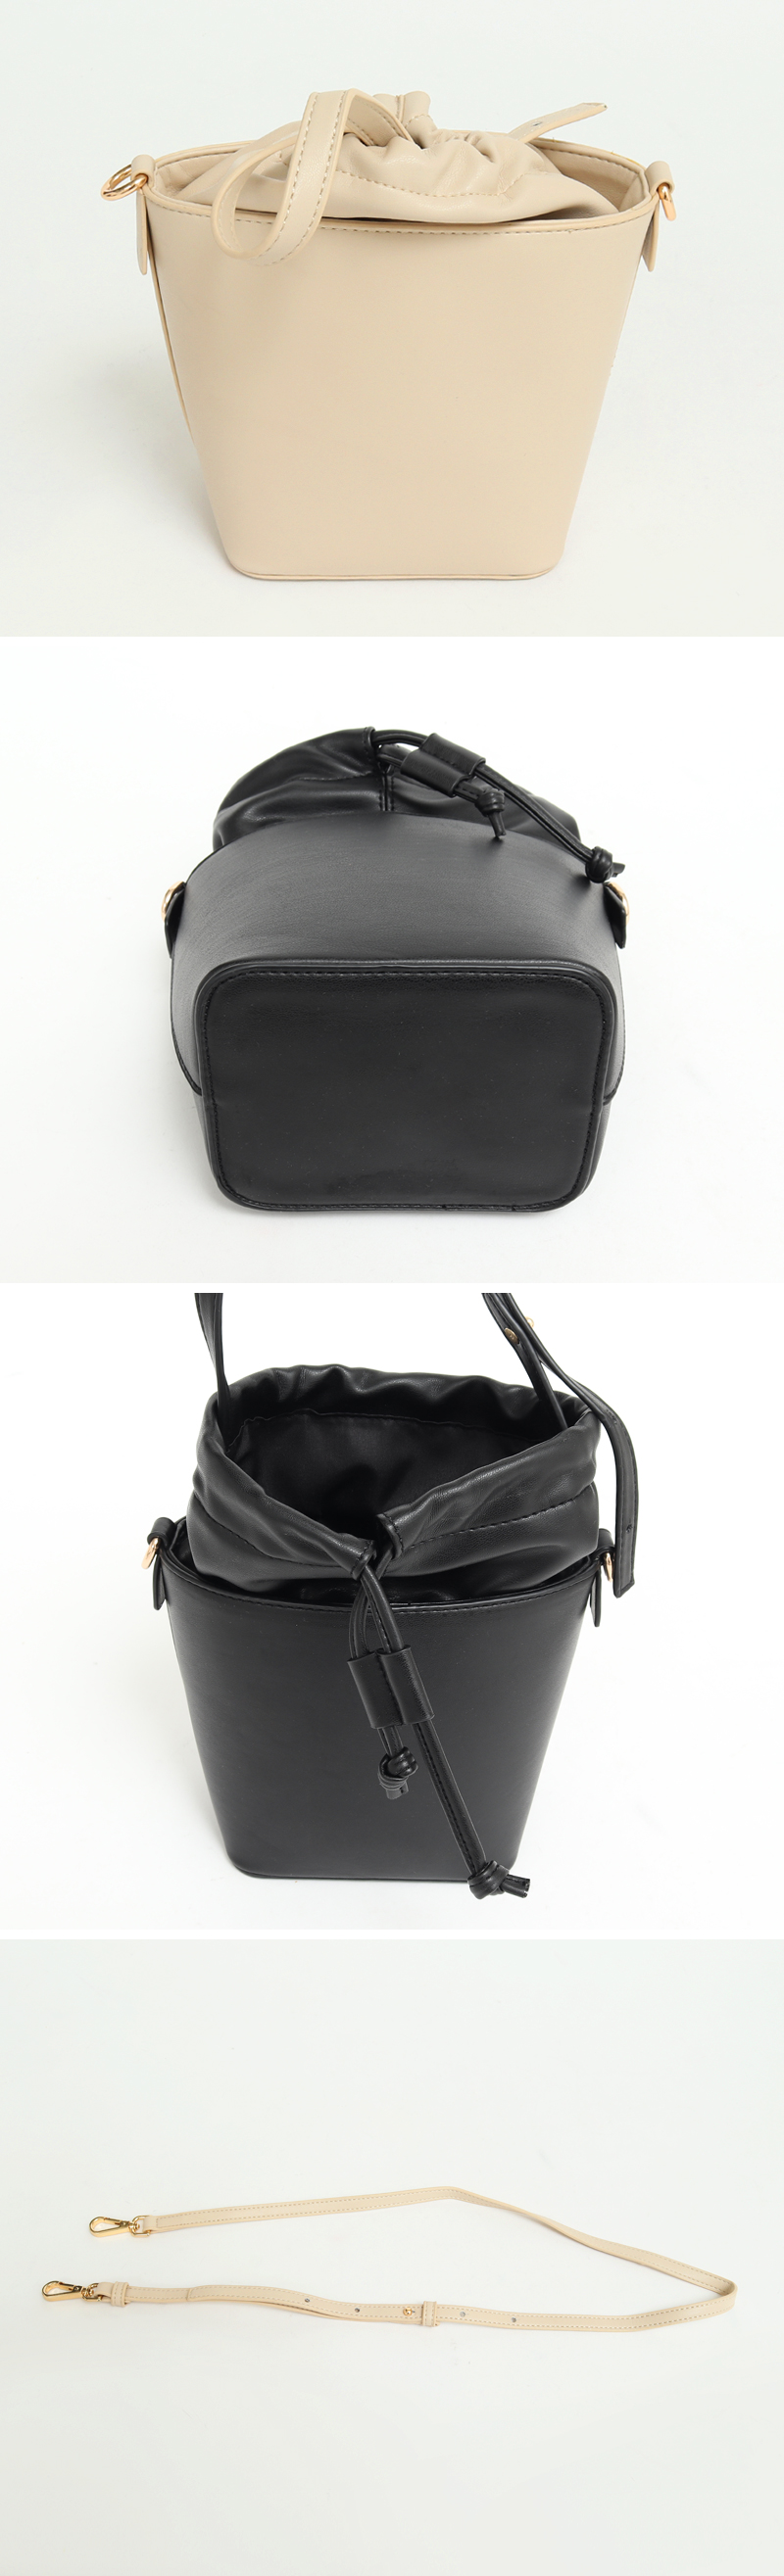 Pouch strap lucky bag_P